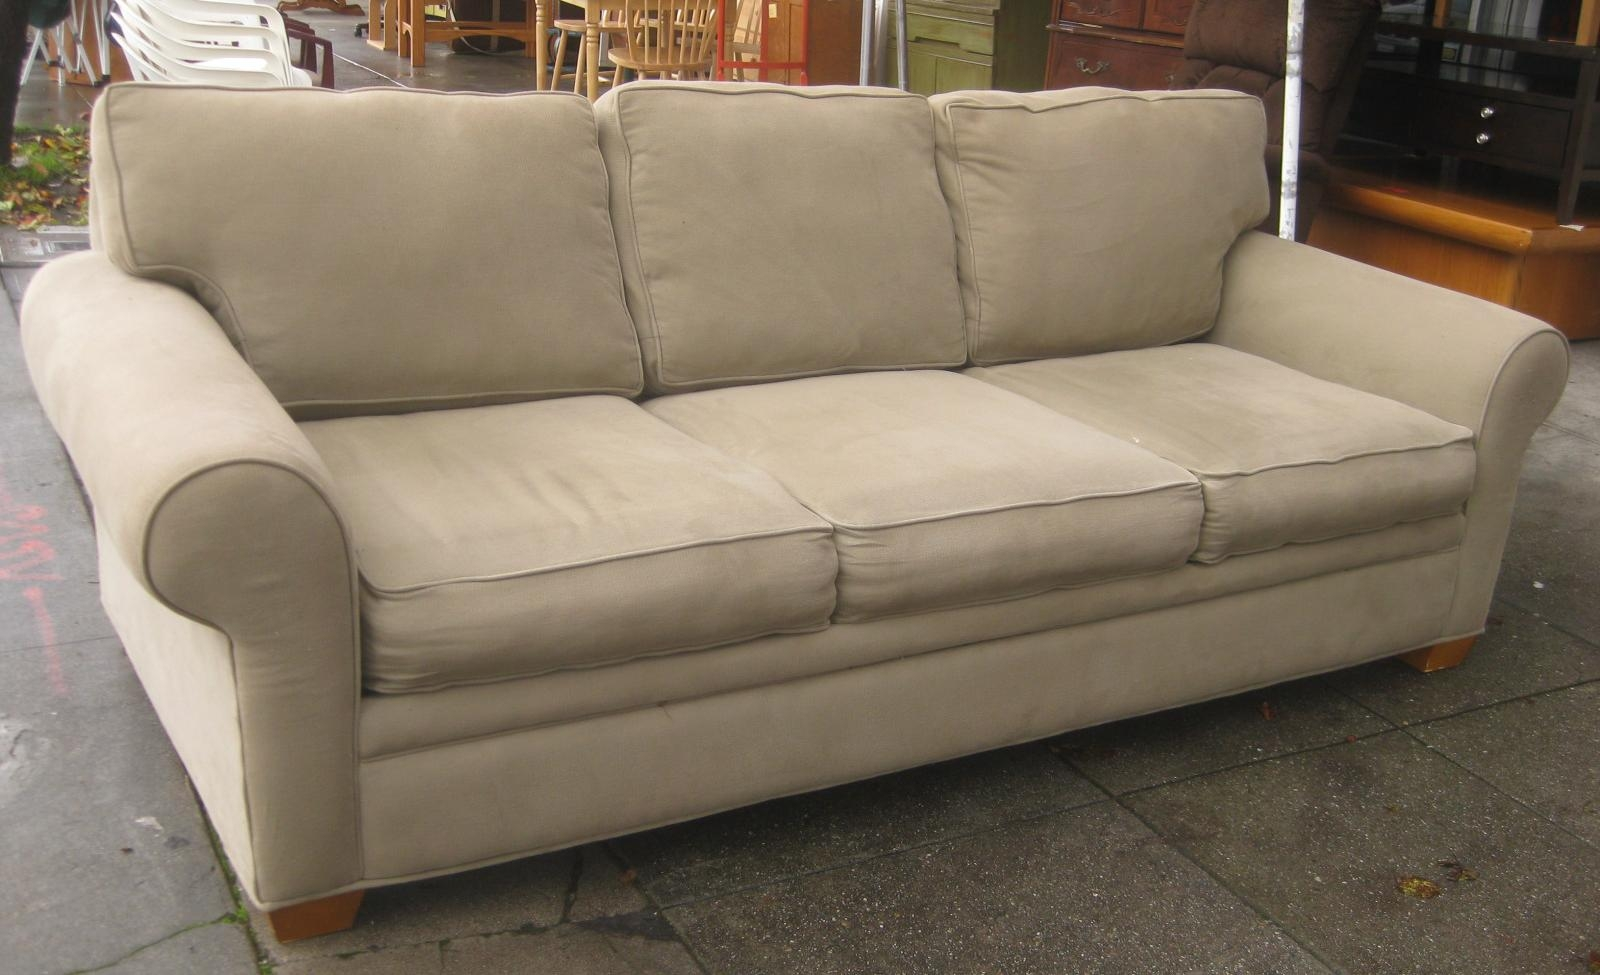 Furniture: Settee Couch | Couches And Sofas | Beige Couch Regarding Beige Sofas (View 11 of 20)